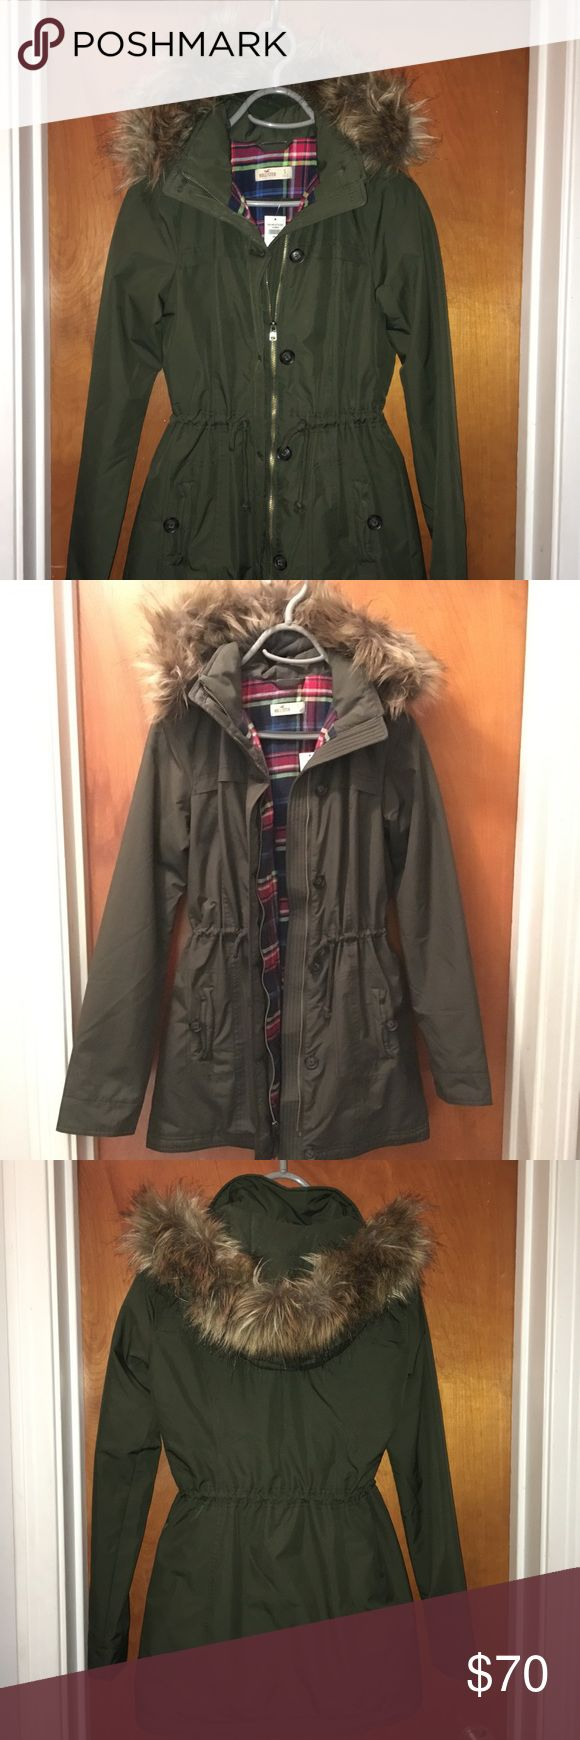 Hollister parka Hollister Parka with hood Lined with Flannel and faux fur is removable. 2 pockets with button closure and one has headphone access. Adjustable waist with ties to tighten or have it relaxed Size small  Color olive with plaid flannel inside   NWT never worn Please feel free to ask any questions! 😊 Hollister Jackets & Coats